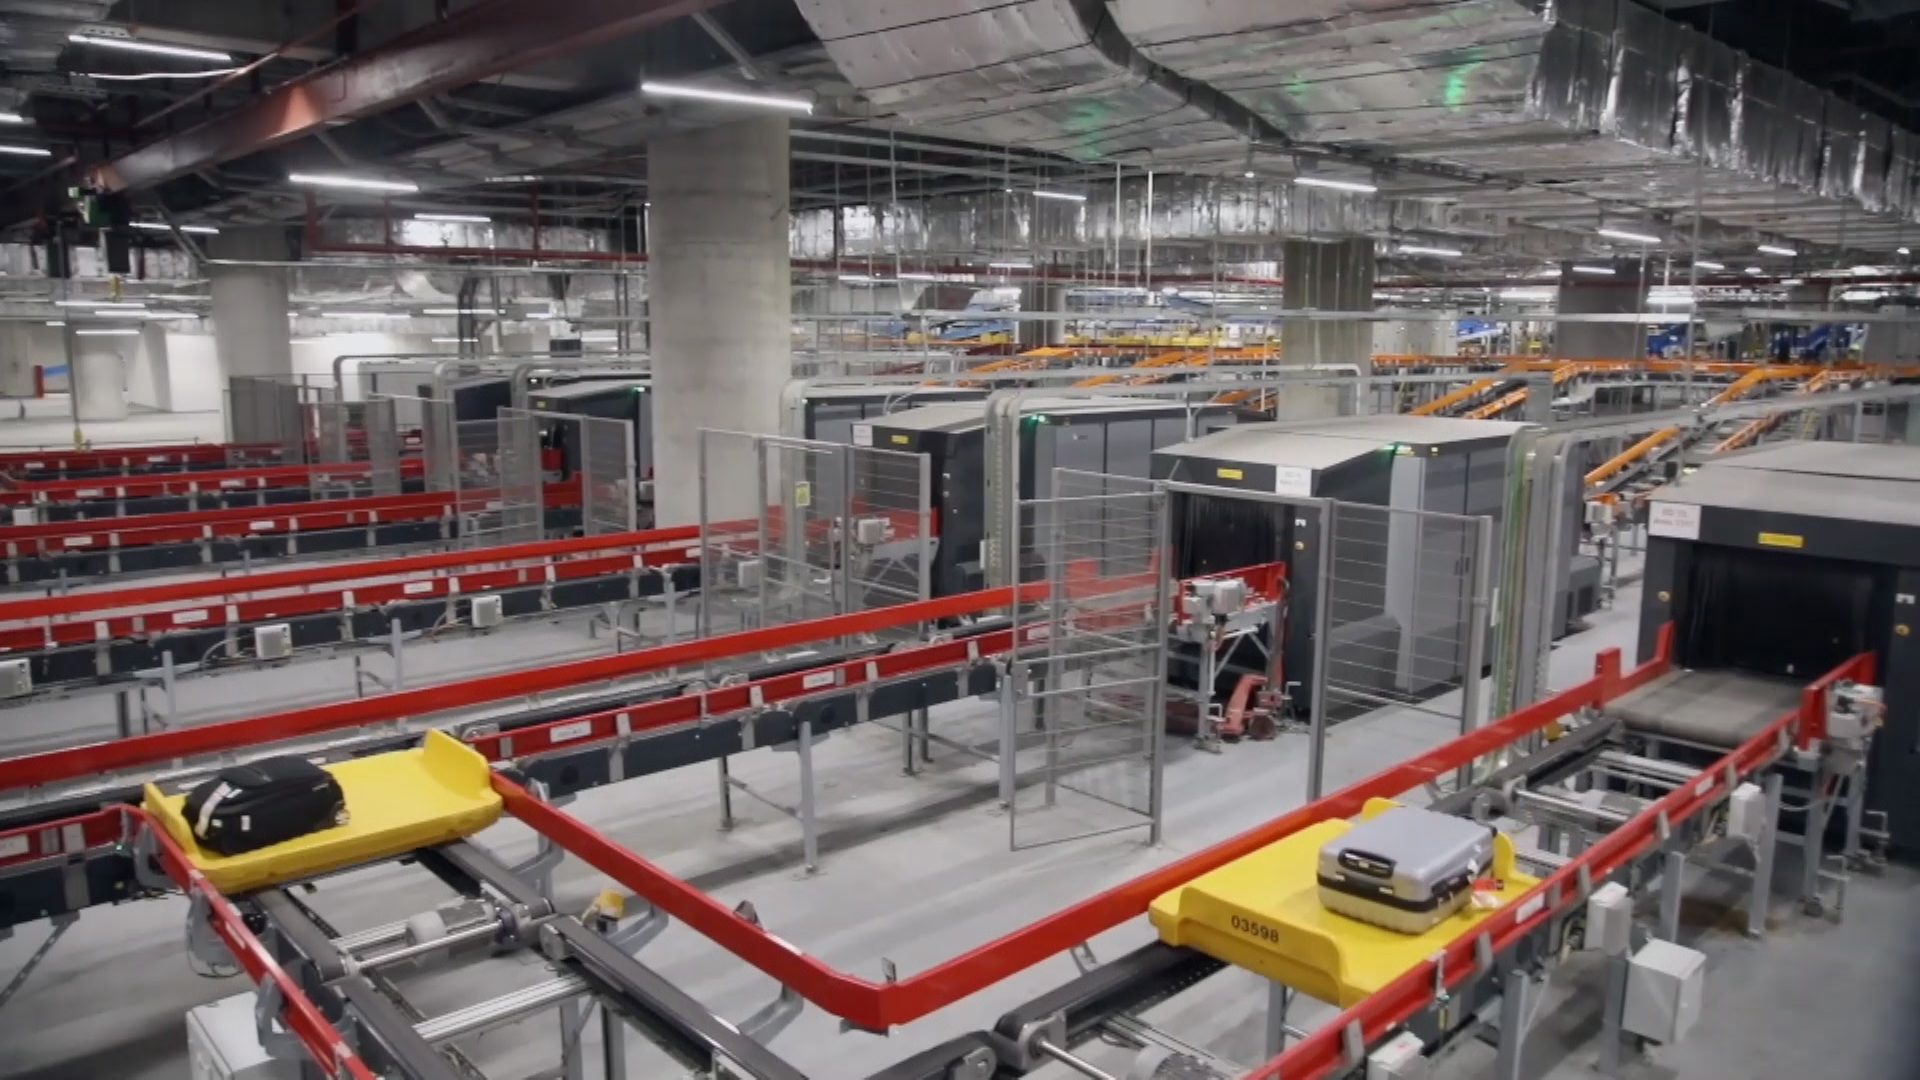 Dutch logistics giant Vanderlande have won the right to operate the baggage services at Sydney's second international airport.